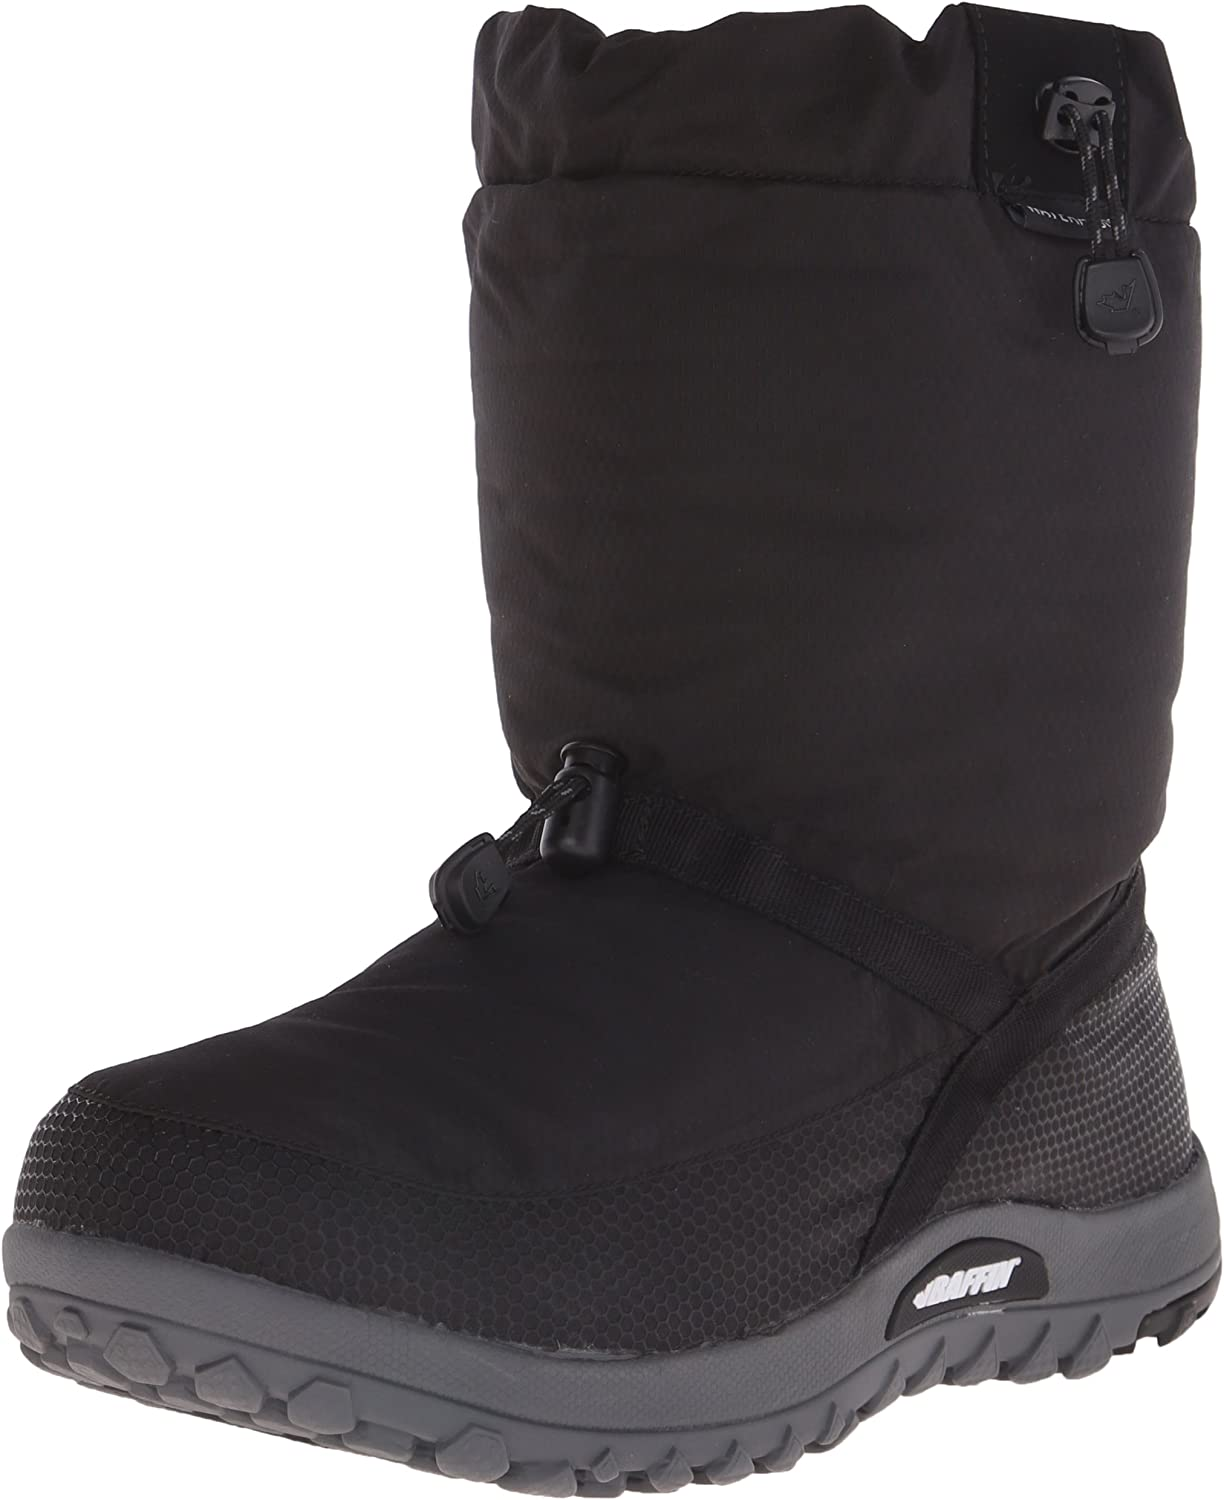 adb20556ac7 Baffin Men's Ease Insulated Lightweight Boot, Black, 11 11 11 M US ...